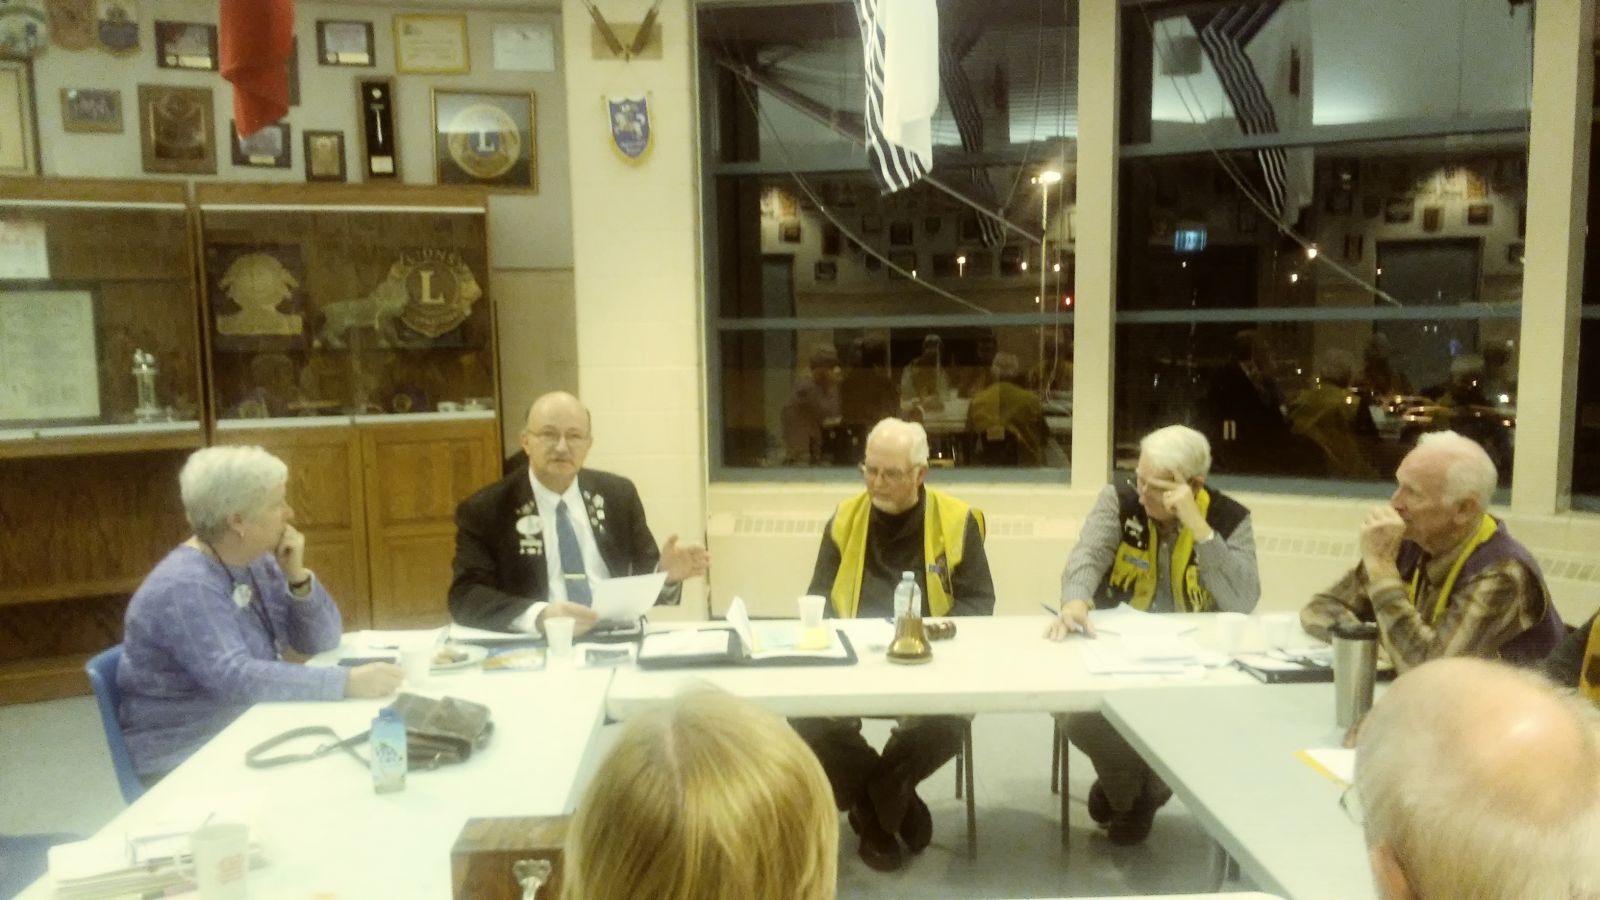 Lion District Governor Jeffrey Friedman, and Mrs. Friedmen graced our meeting